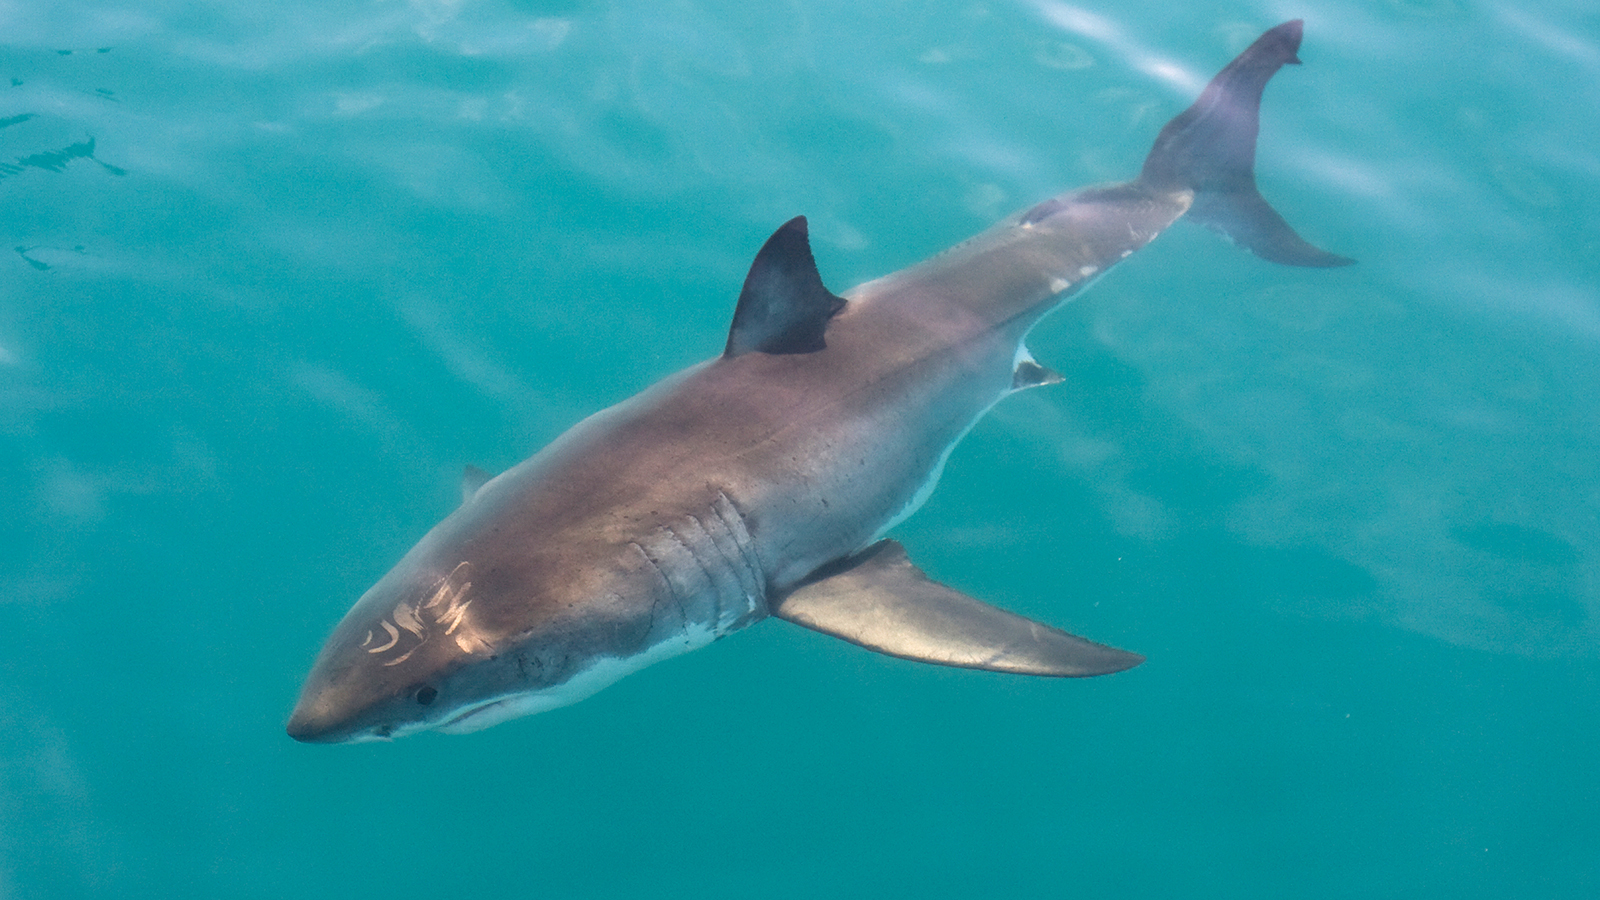 Great White Shark Backgrounds, Compatible - PC, Mobile, Gadgets  1600x900 px